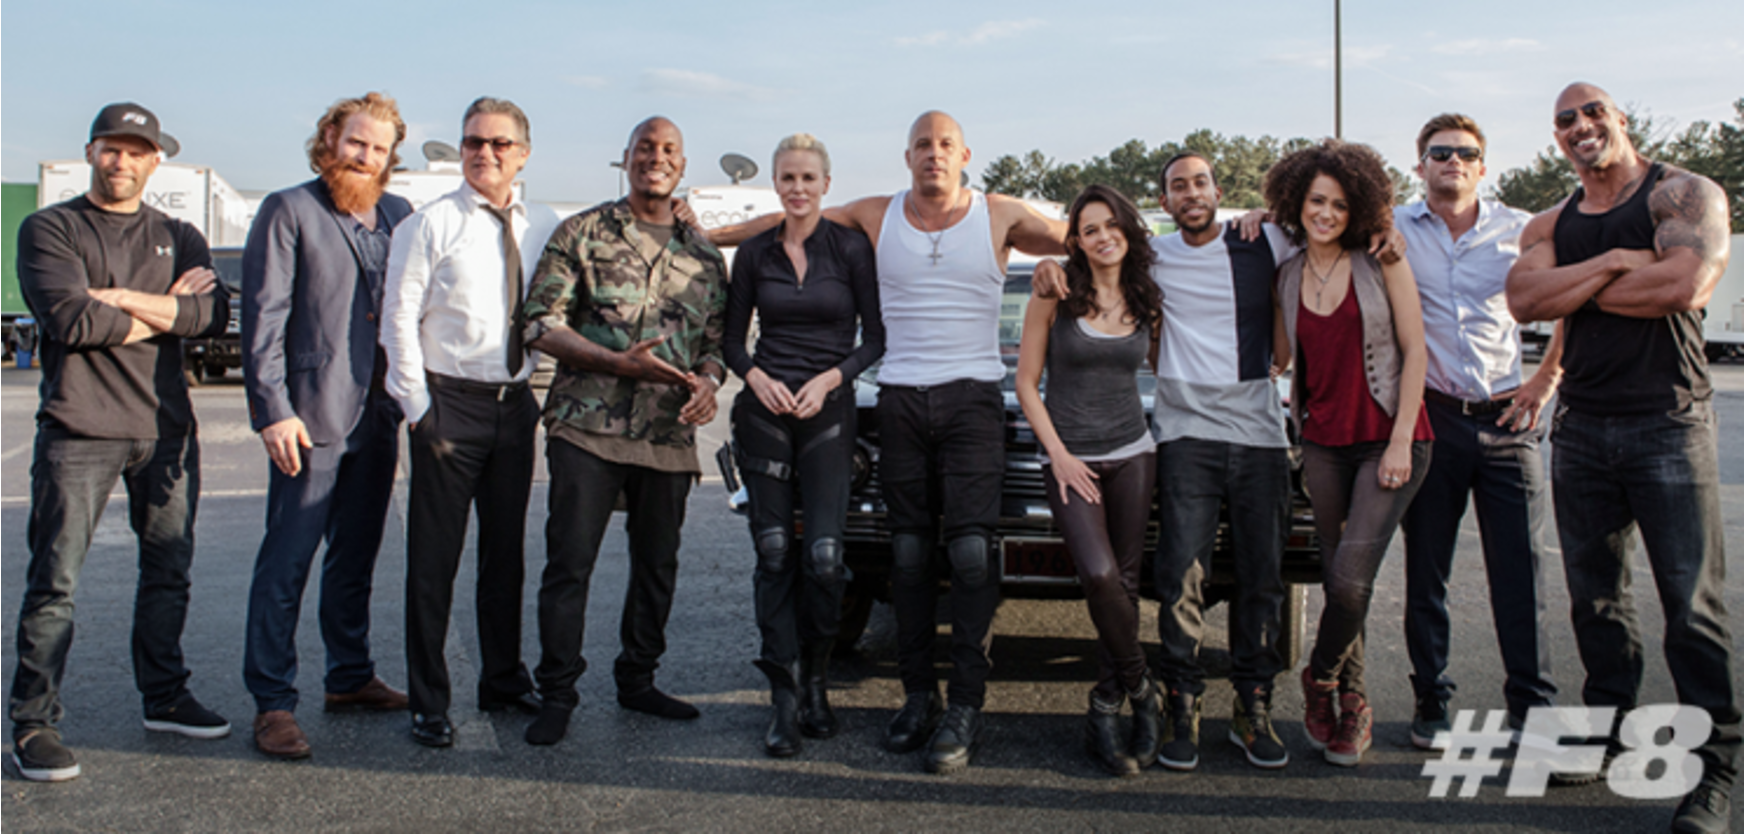 Photo of Fast 8 Cast Shares 'Happy' Post Amid Vin and Dwayne Feud